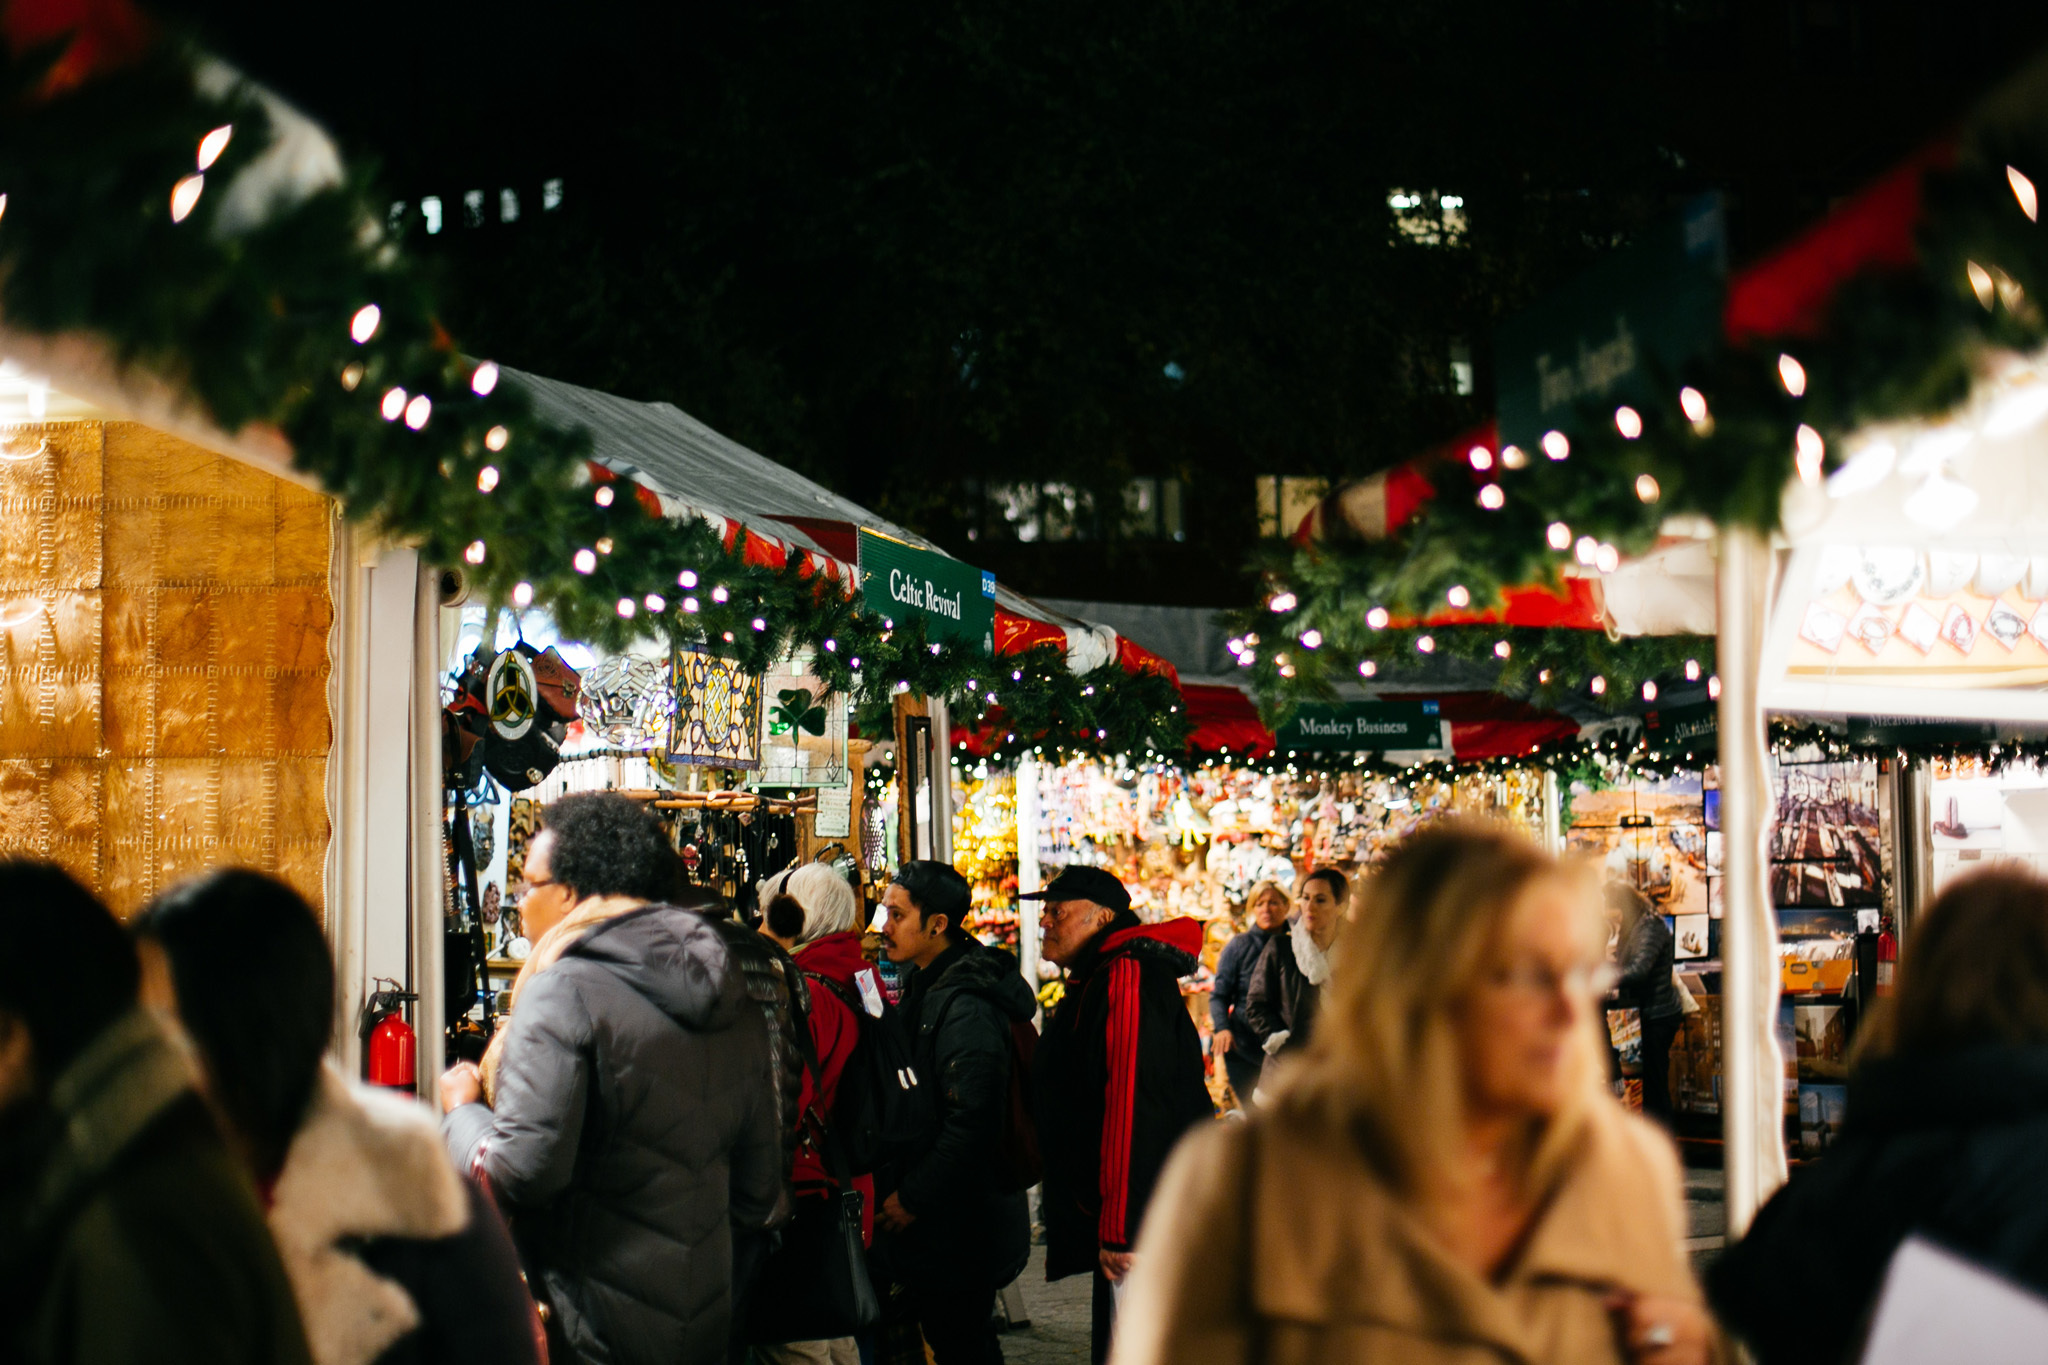 Christmas Market New York City.Best Holiday Markets In Nyc For Shopping And Snacking